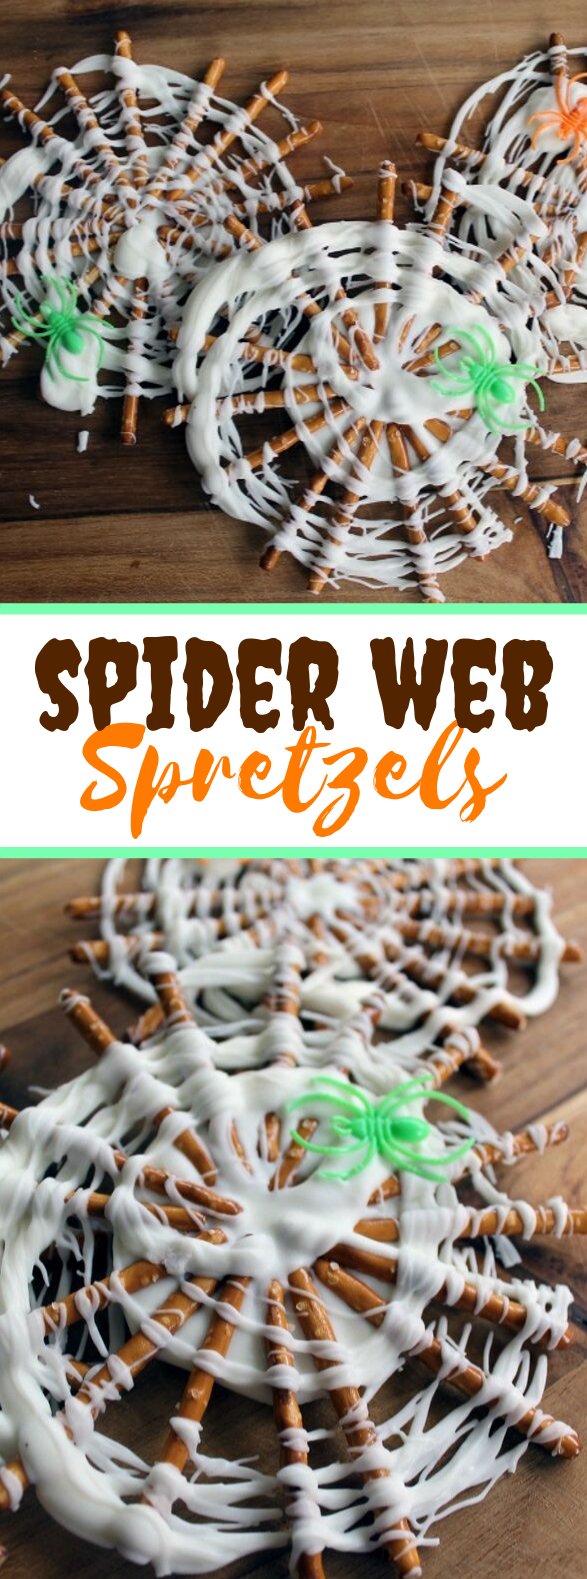 Spider Web Pretzels – Easy Halloween Treat #desserts #kidfriendly